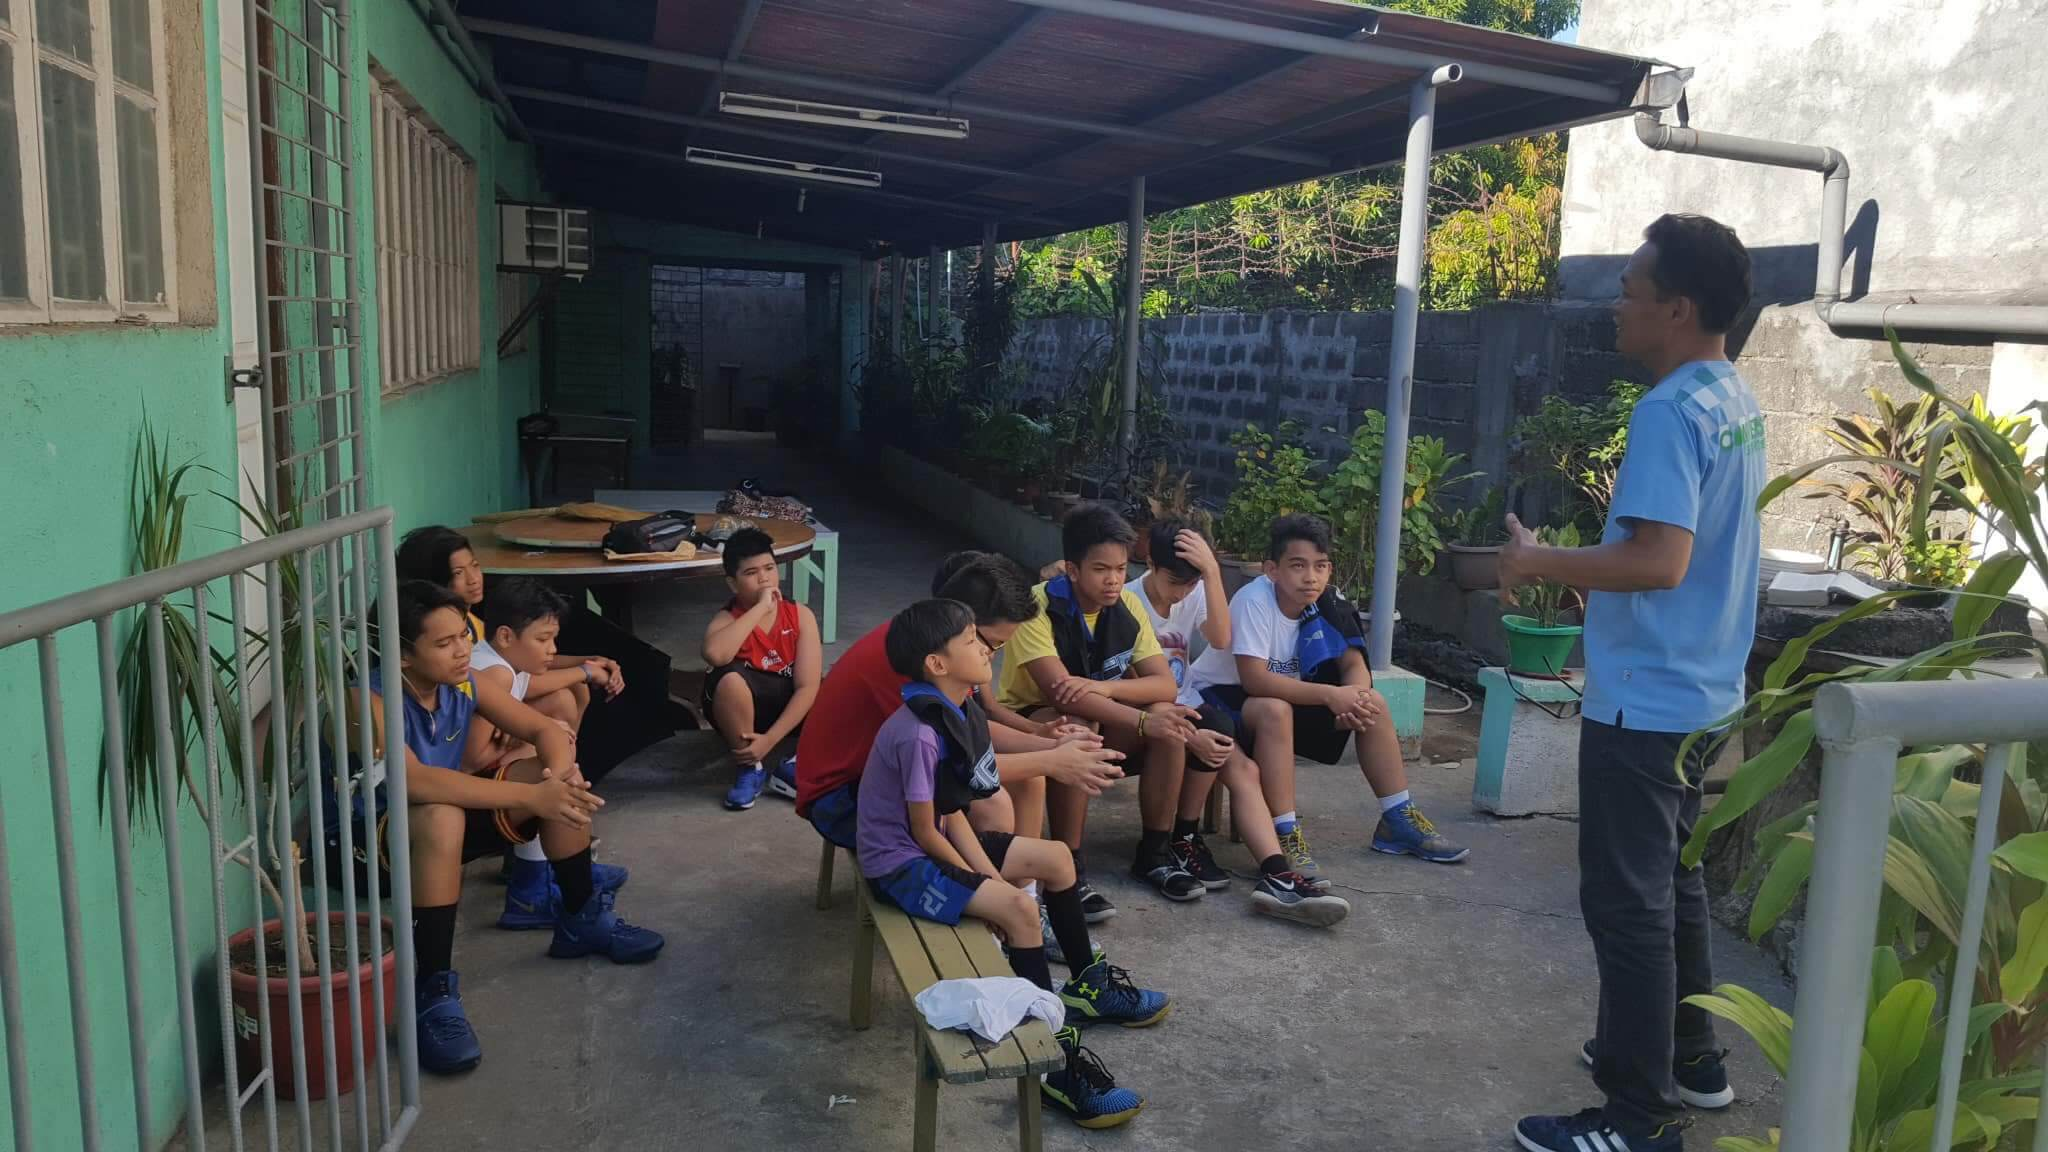 Bible Basketball League Team Devotion led by Bro. Rmail - April 28